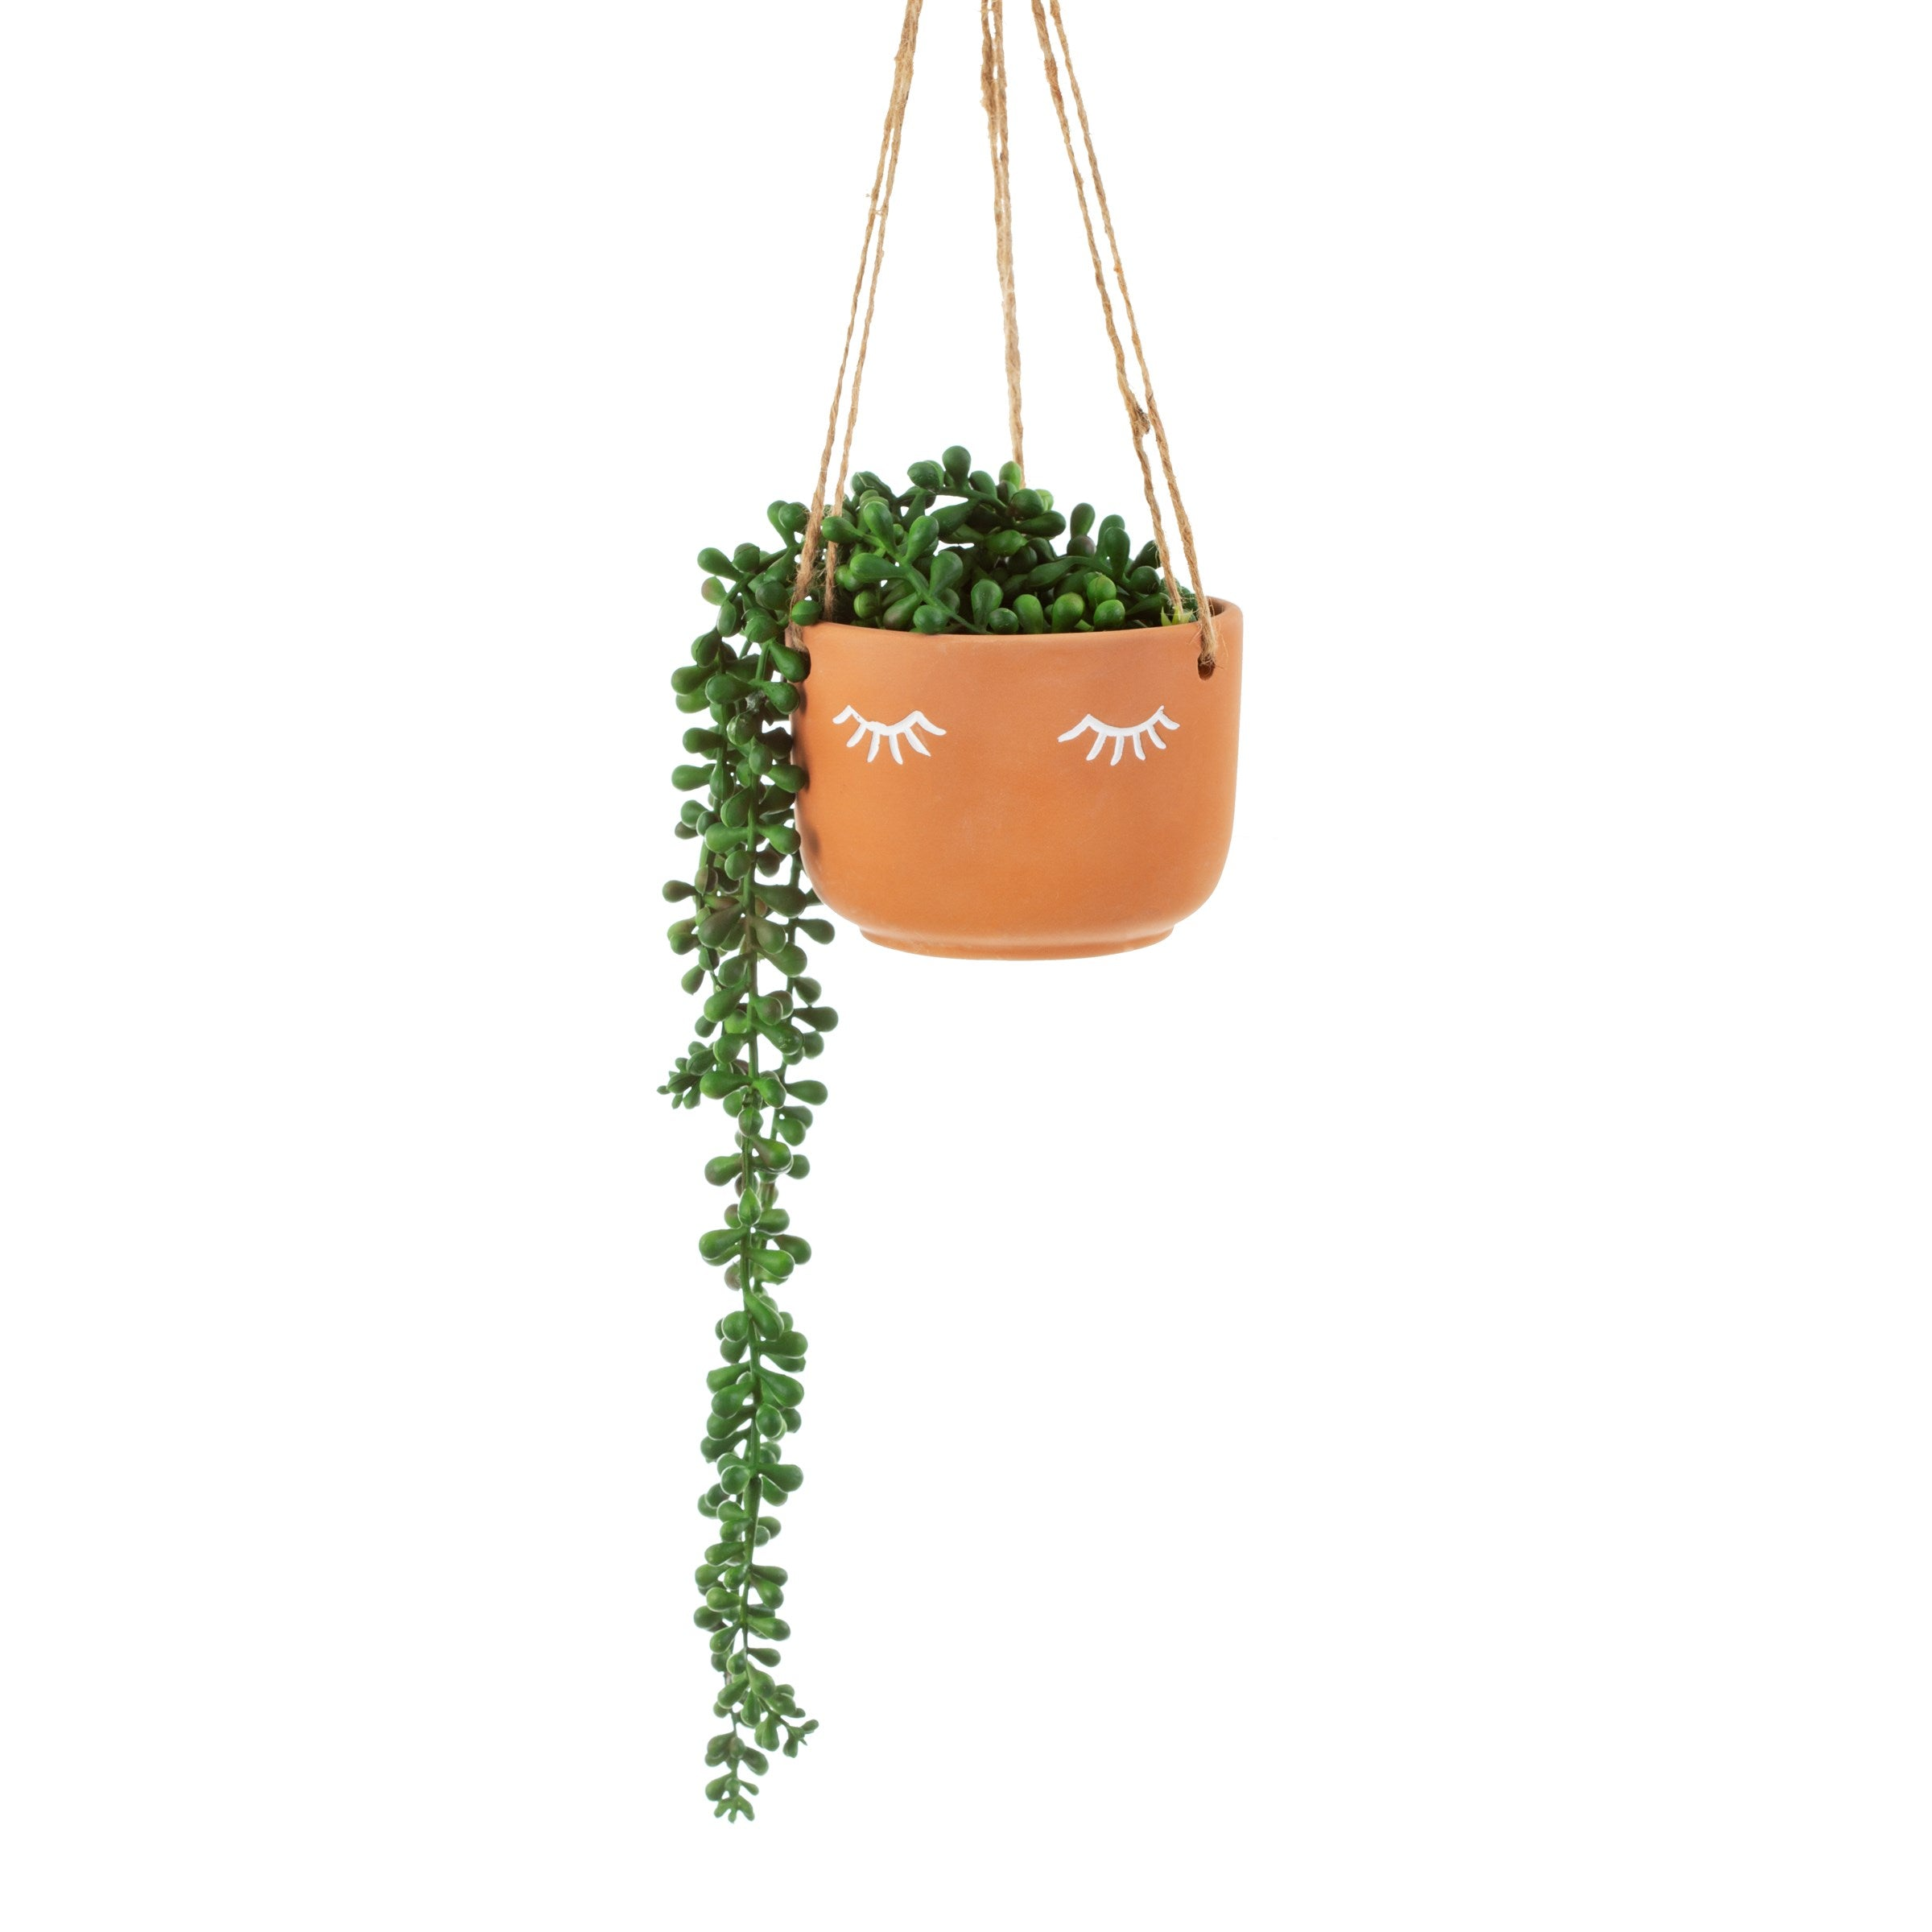 Eyes shut terracotta hanging planter